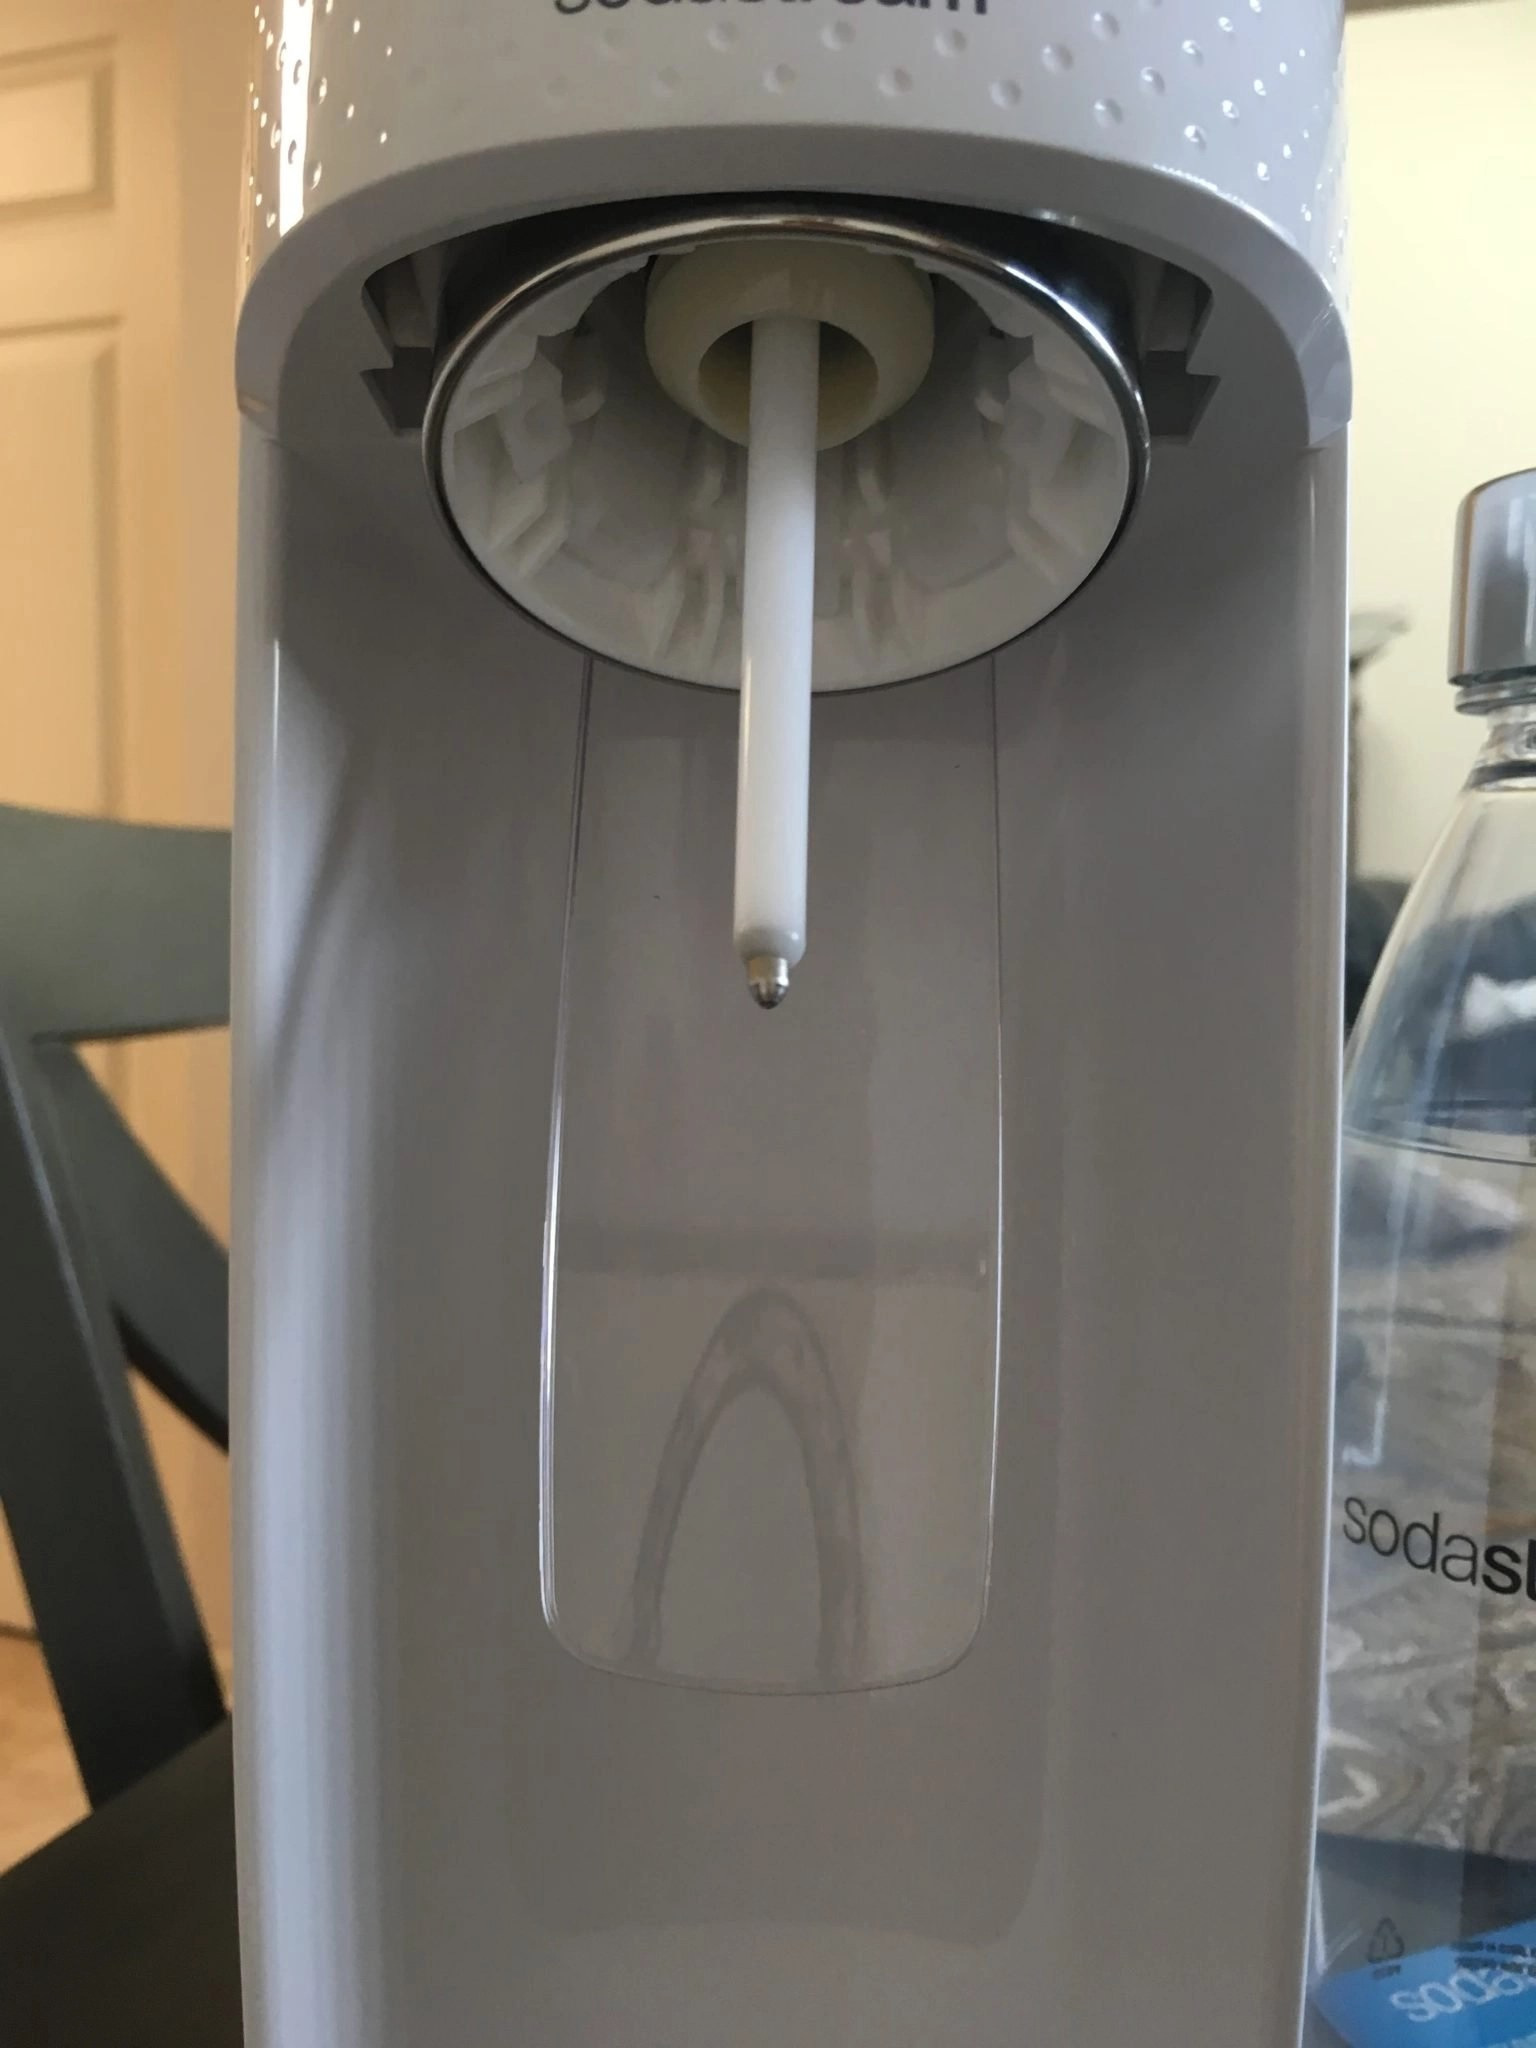 Soda Stream without the bottle